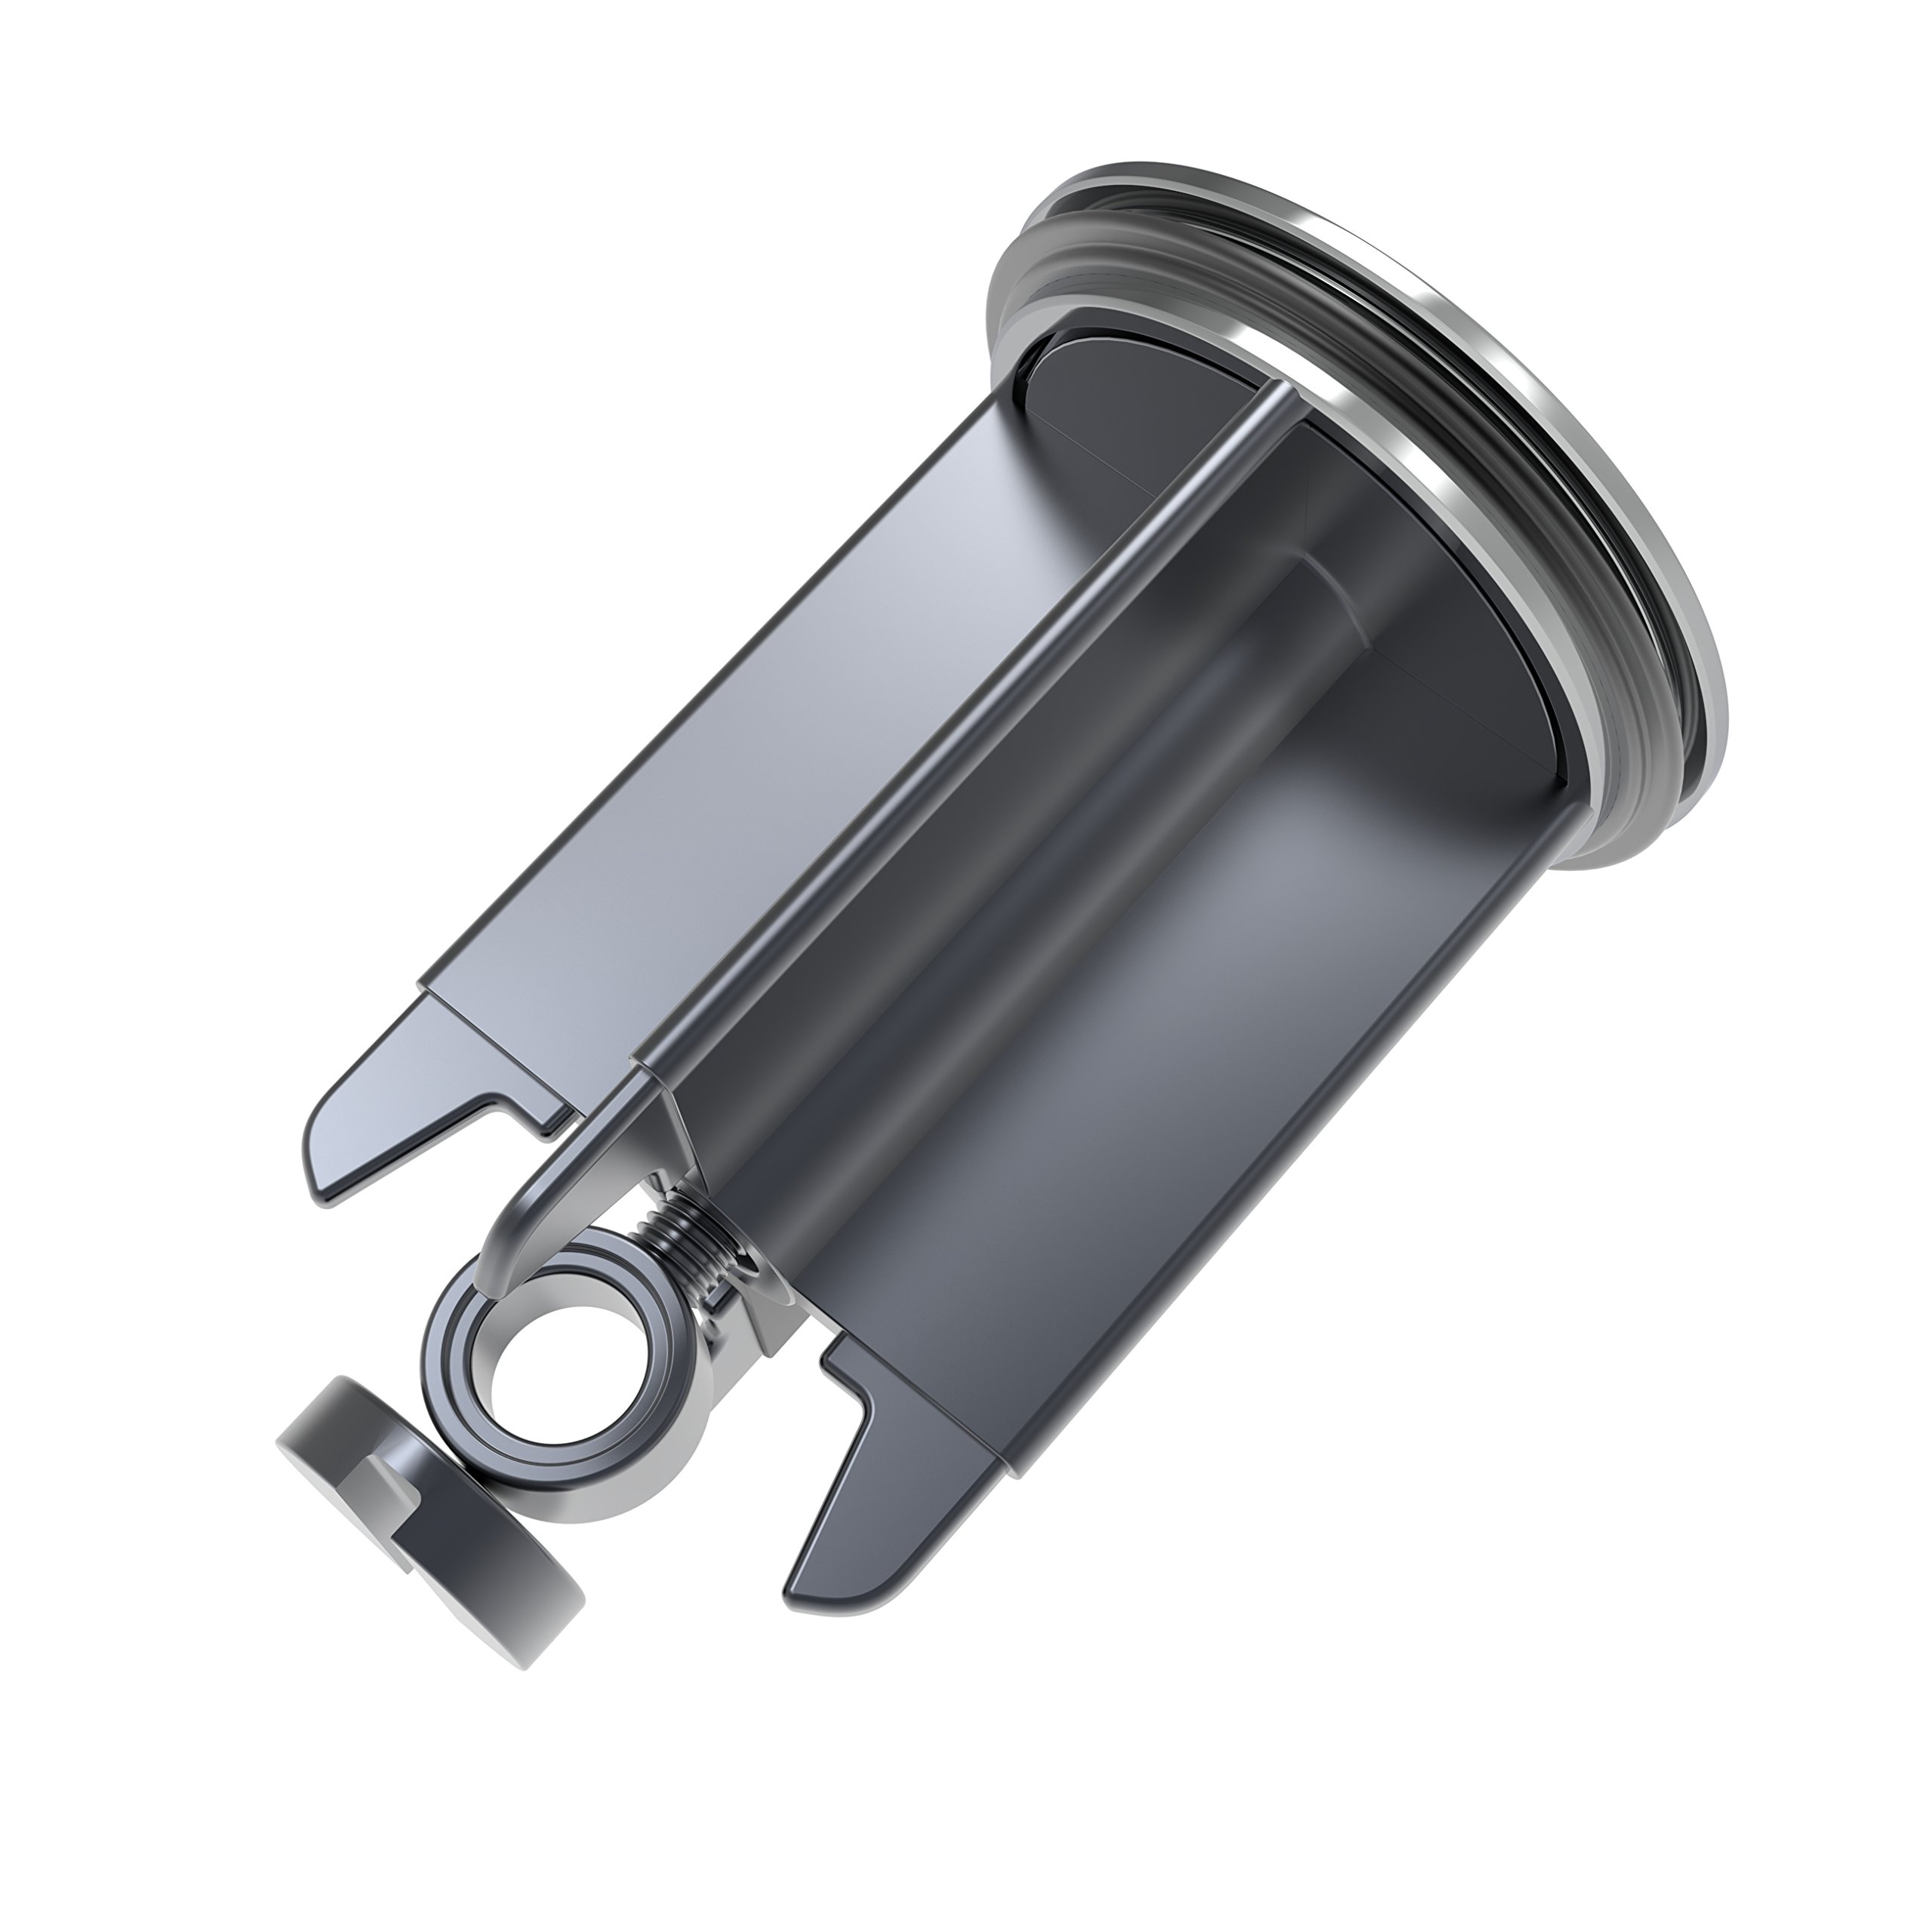 M. ROSENFELD Premium Sink Plug 40mm Chrome - Universal Stopper For Bathroom Sinks and Bidets - Height Adjustable, Stainless and Limescale Resistant, The Perfect Seal